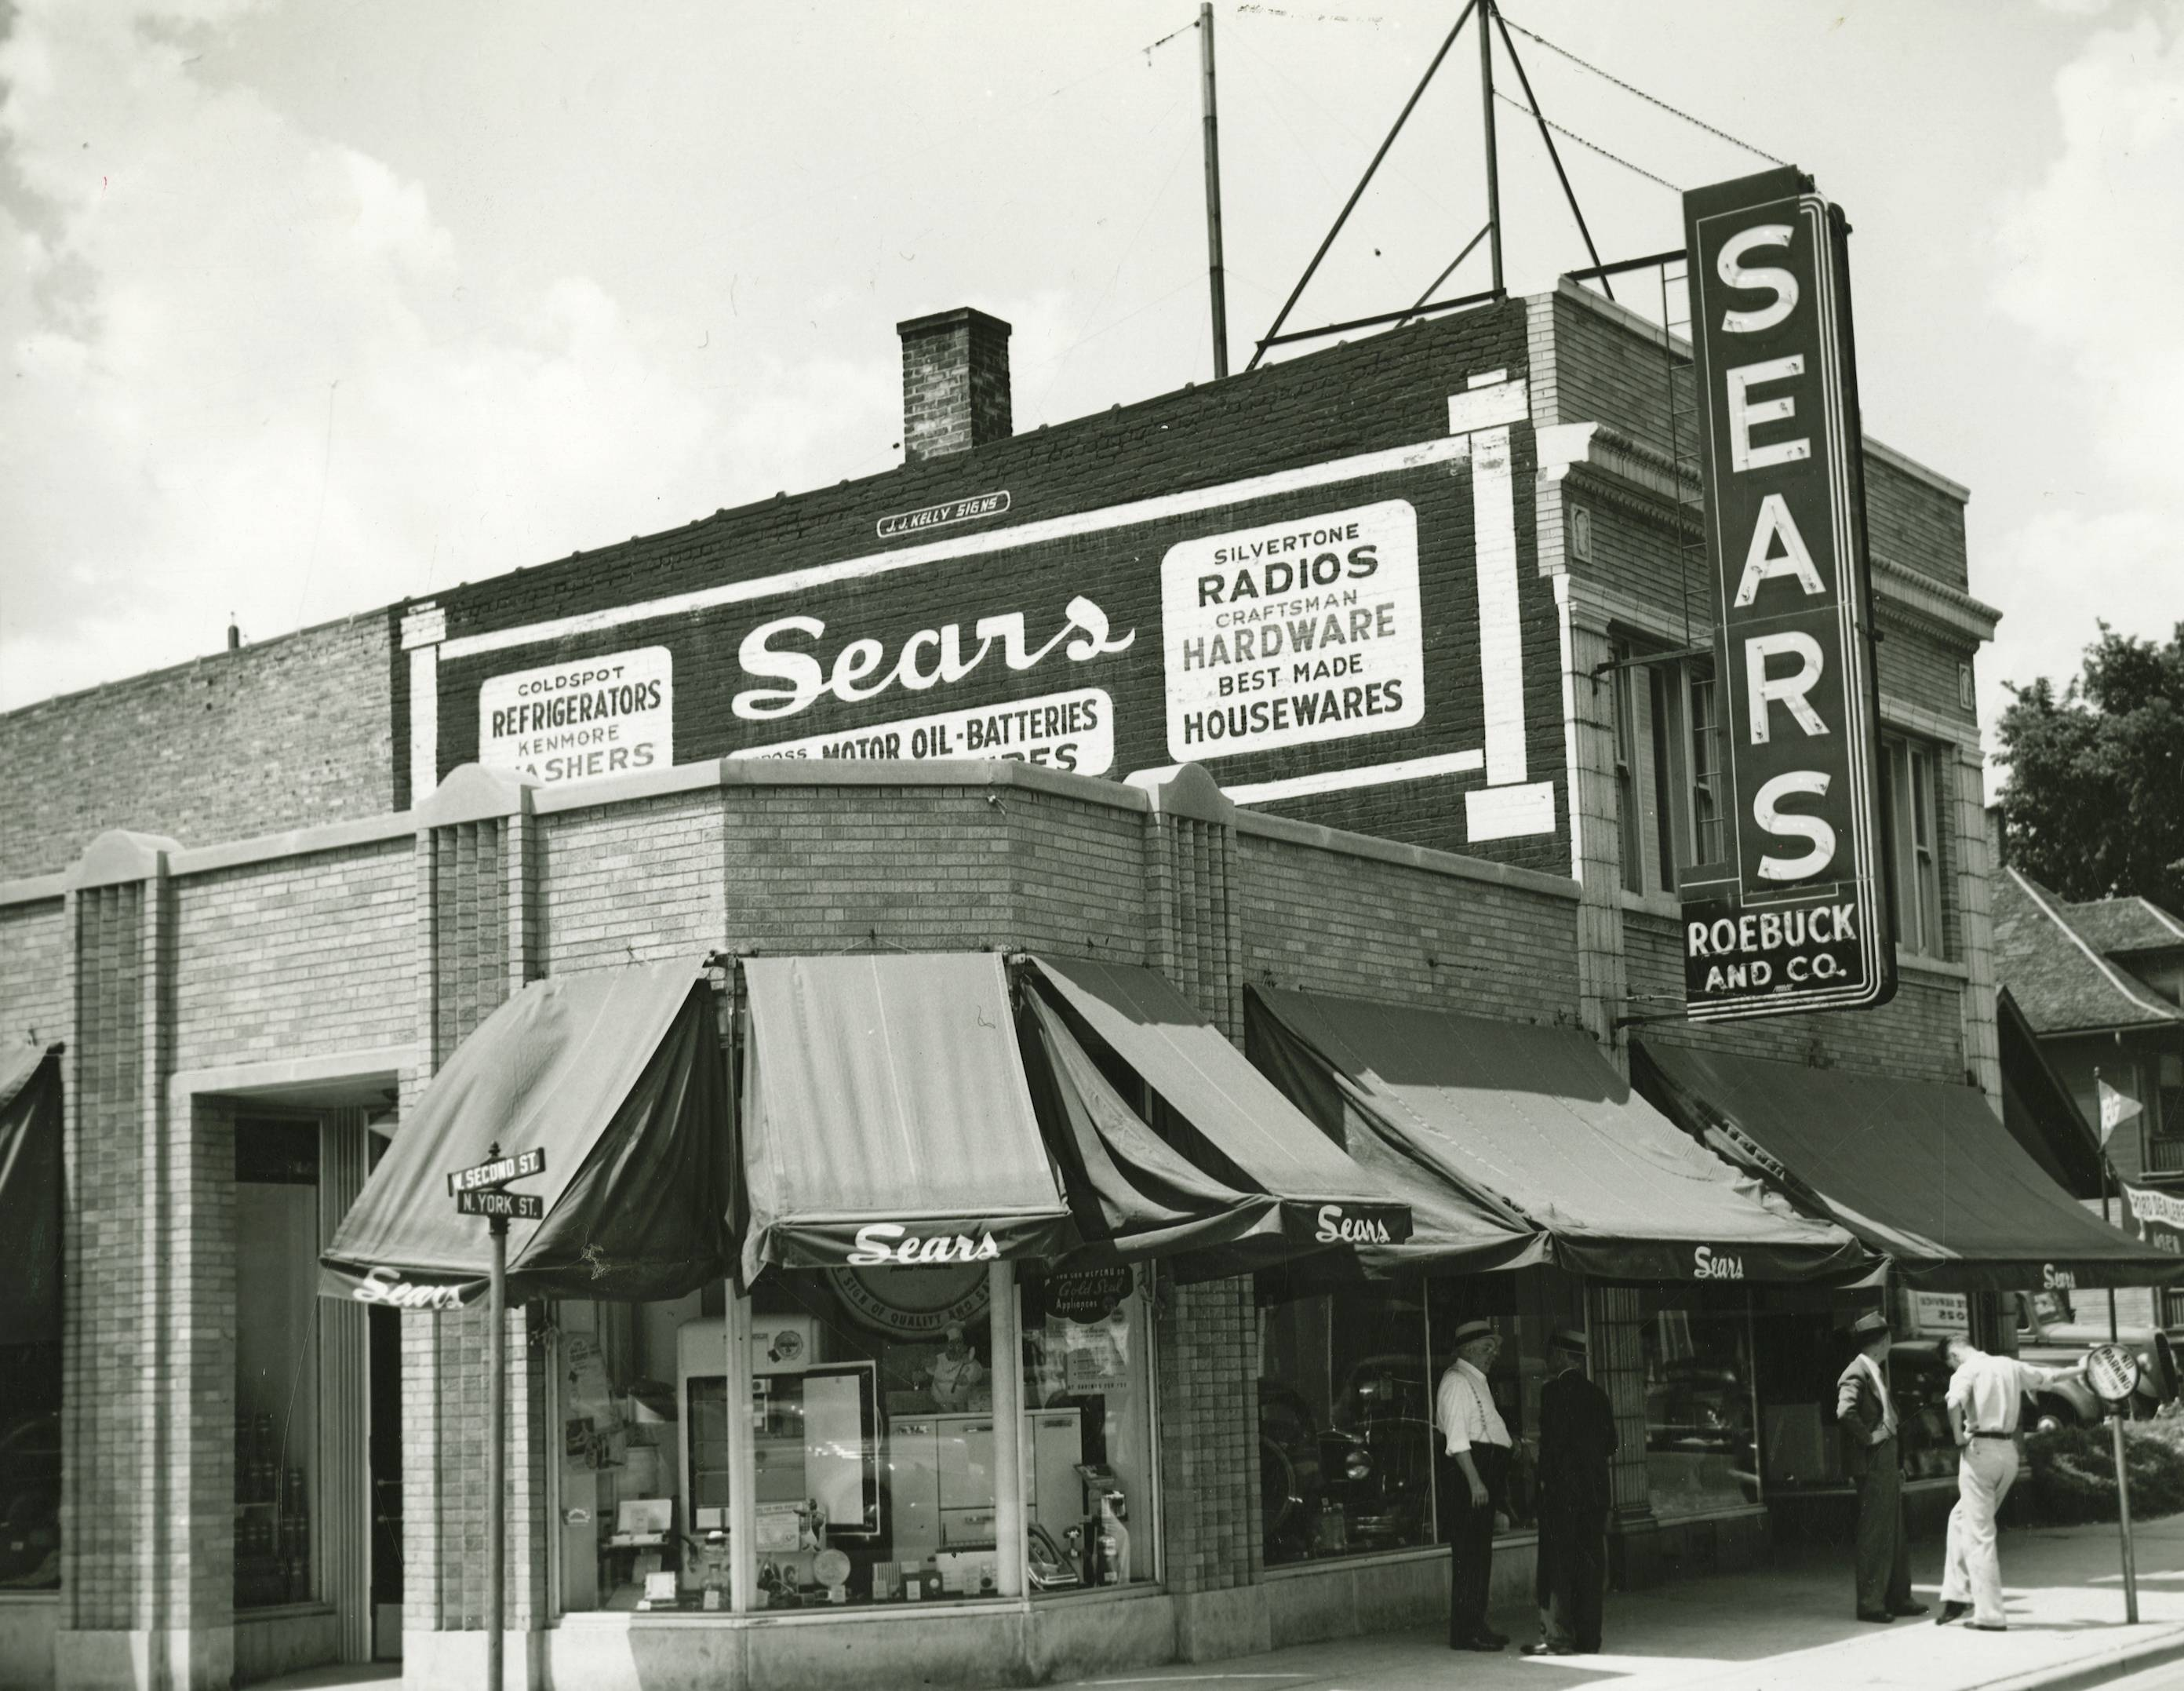 Sears Roebuck and Co. Store stood at 170 N. York Street, the northwest corner of York and Second Streets. The store was in operation circa 1937 to circa 1964.